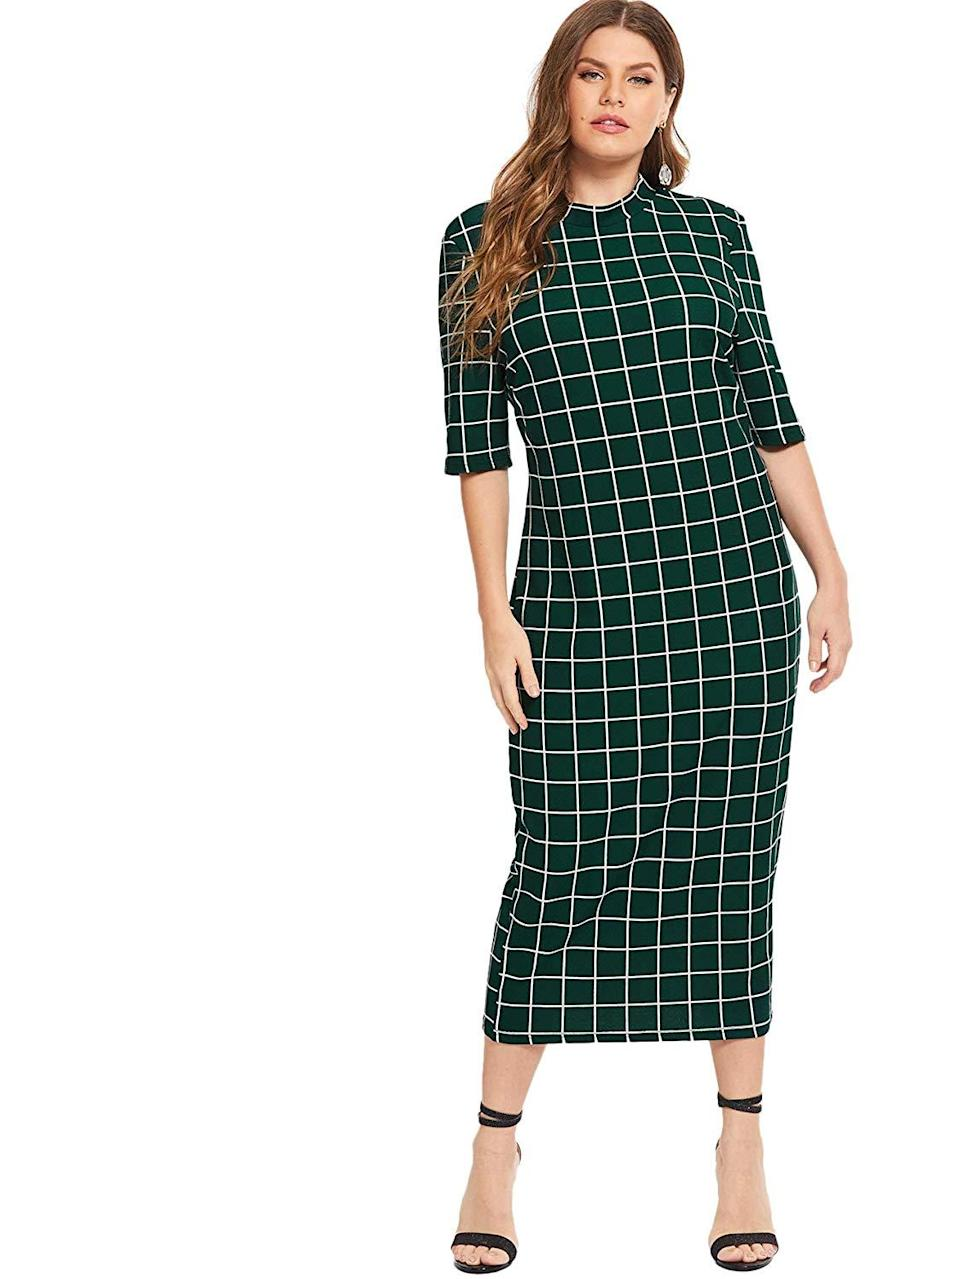 """<br><br><strong>Floerns</strong> Plus-Size Bodycon Pencil Dress, $, available at <a href=""""https://amzn.to/3mgtFo9"""" rel=""""nofollow noopener"""" target=""""_blank"""" data-ylk=""""slk:Amazon"""" class=""""link rapid-noclick-resp"""">Amazon</a>"""